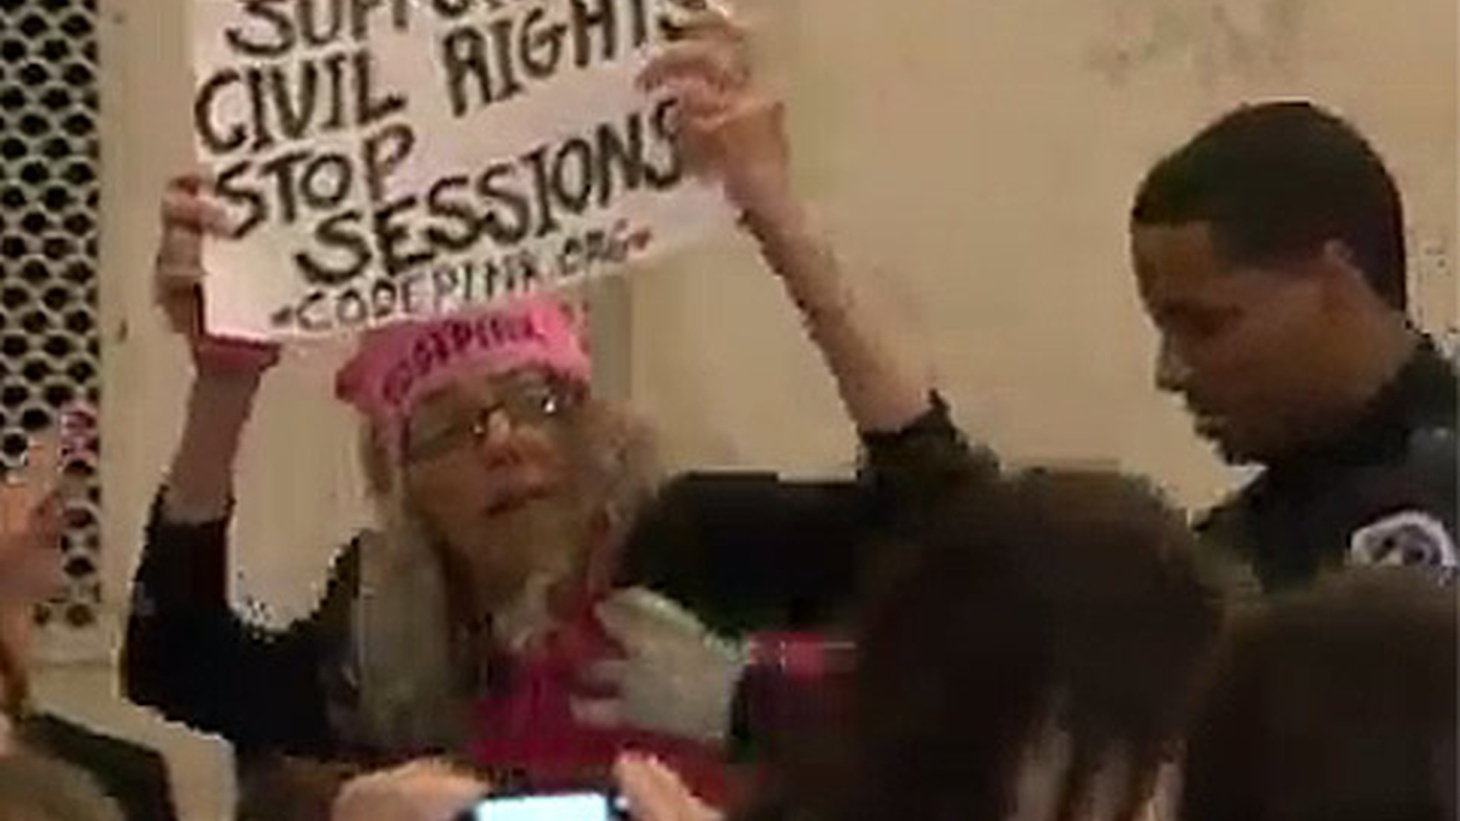 Back in January, when Attorney General Jeff Sessions was being confirmed by a Senate Committee, Alabama's Richard Shelby was commending Sessions' record. That brought a laugh from Desiree Fairooze, a 61-year-old Code Pink activist in a Statue of Liberty Hat, holding a protest sign.